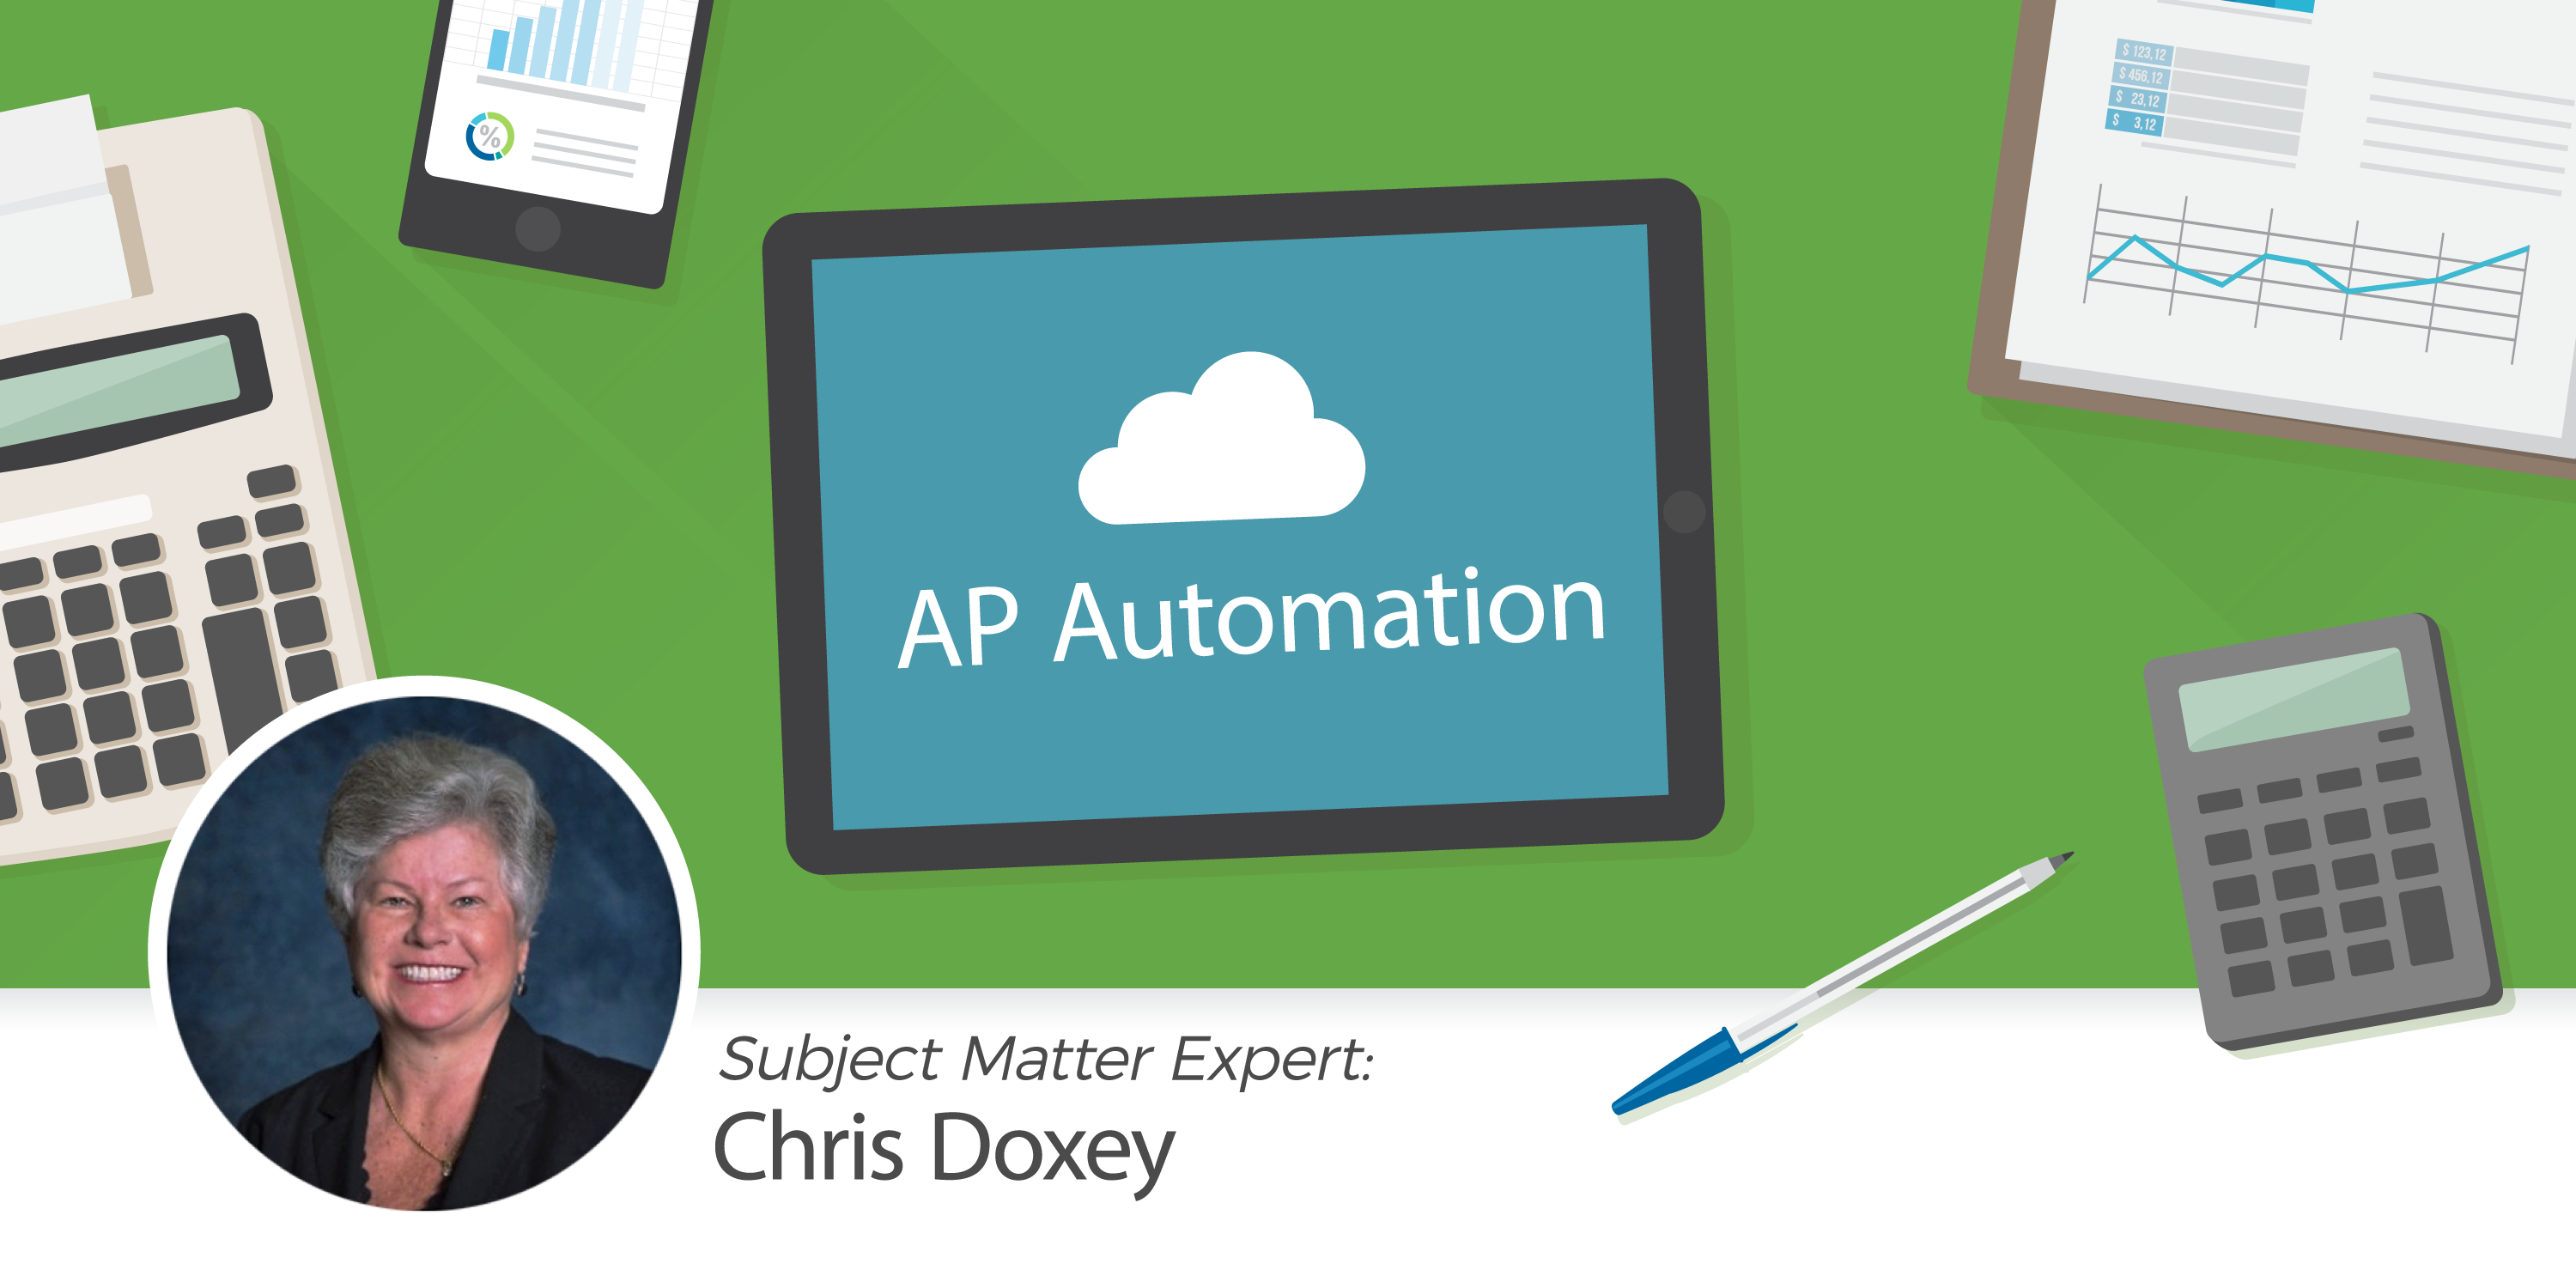 Chris Doxey presents 8 benefits of automating accounts payable